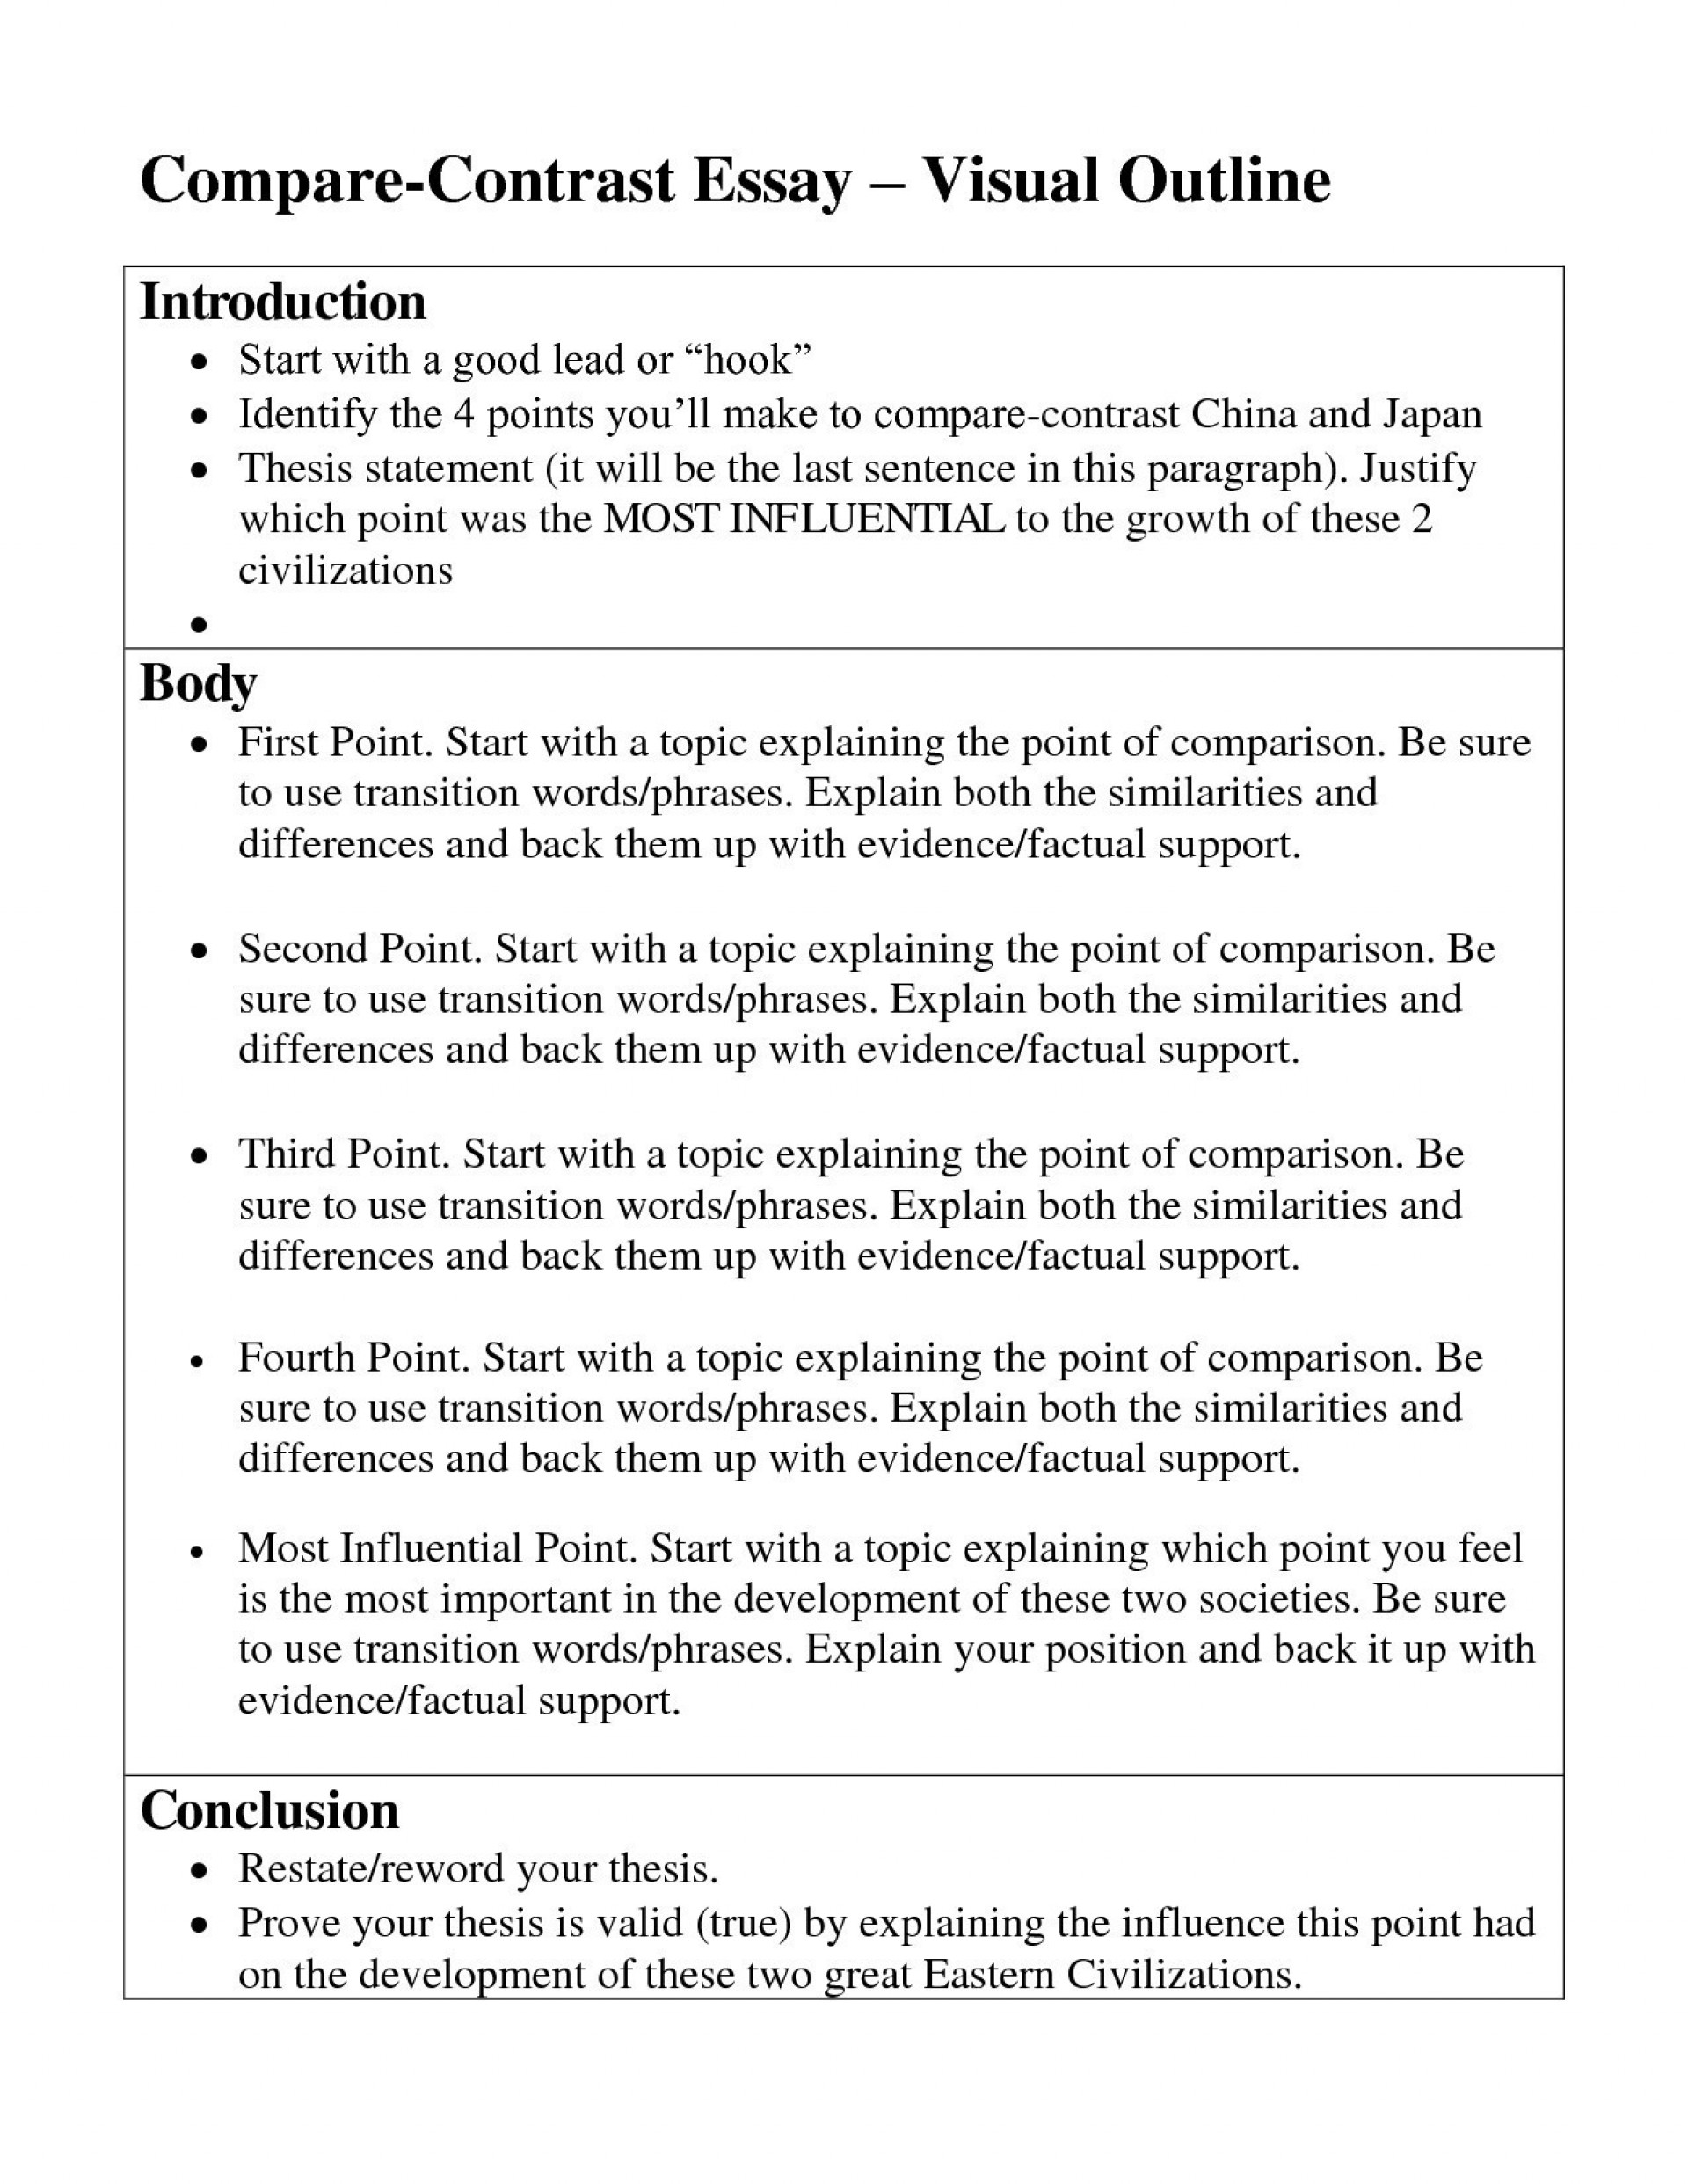 014 Good Hook For An Essay Writing Hooks Worksheet Refrence Laws Fresh How To Write Ess Argumentative Narrative The Best College Sentence Informative About Yourself Impressive A Examples Of On Kill Mockingbird Music 1920